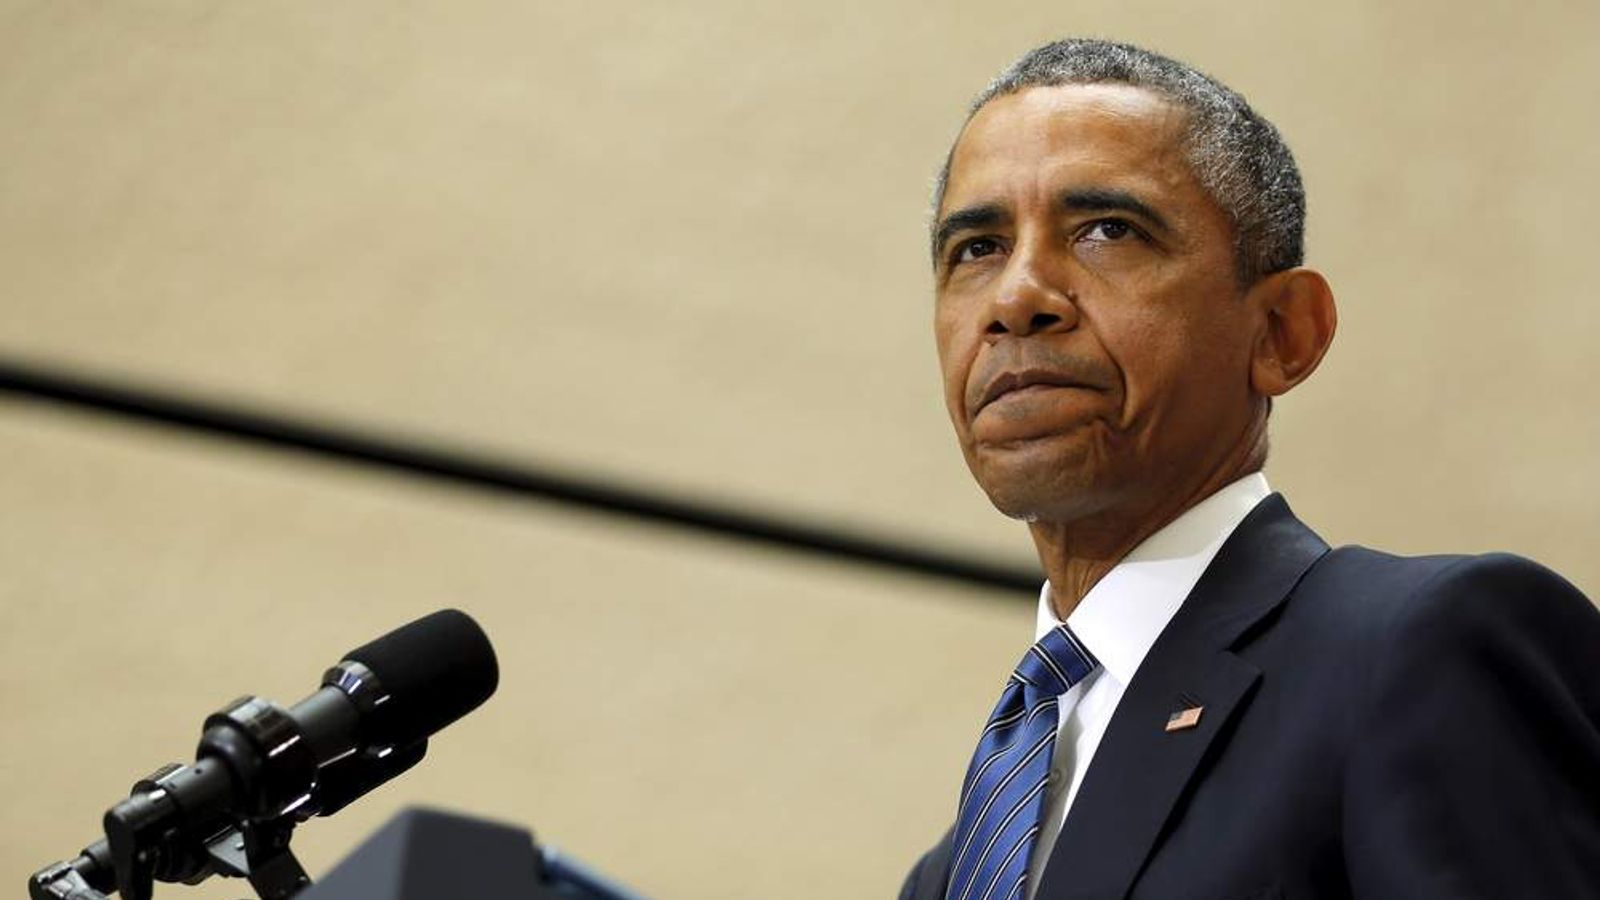 Obama pauses during remarks on a nuclear deal with Iran at American University in Washington